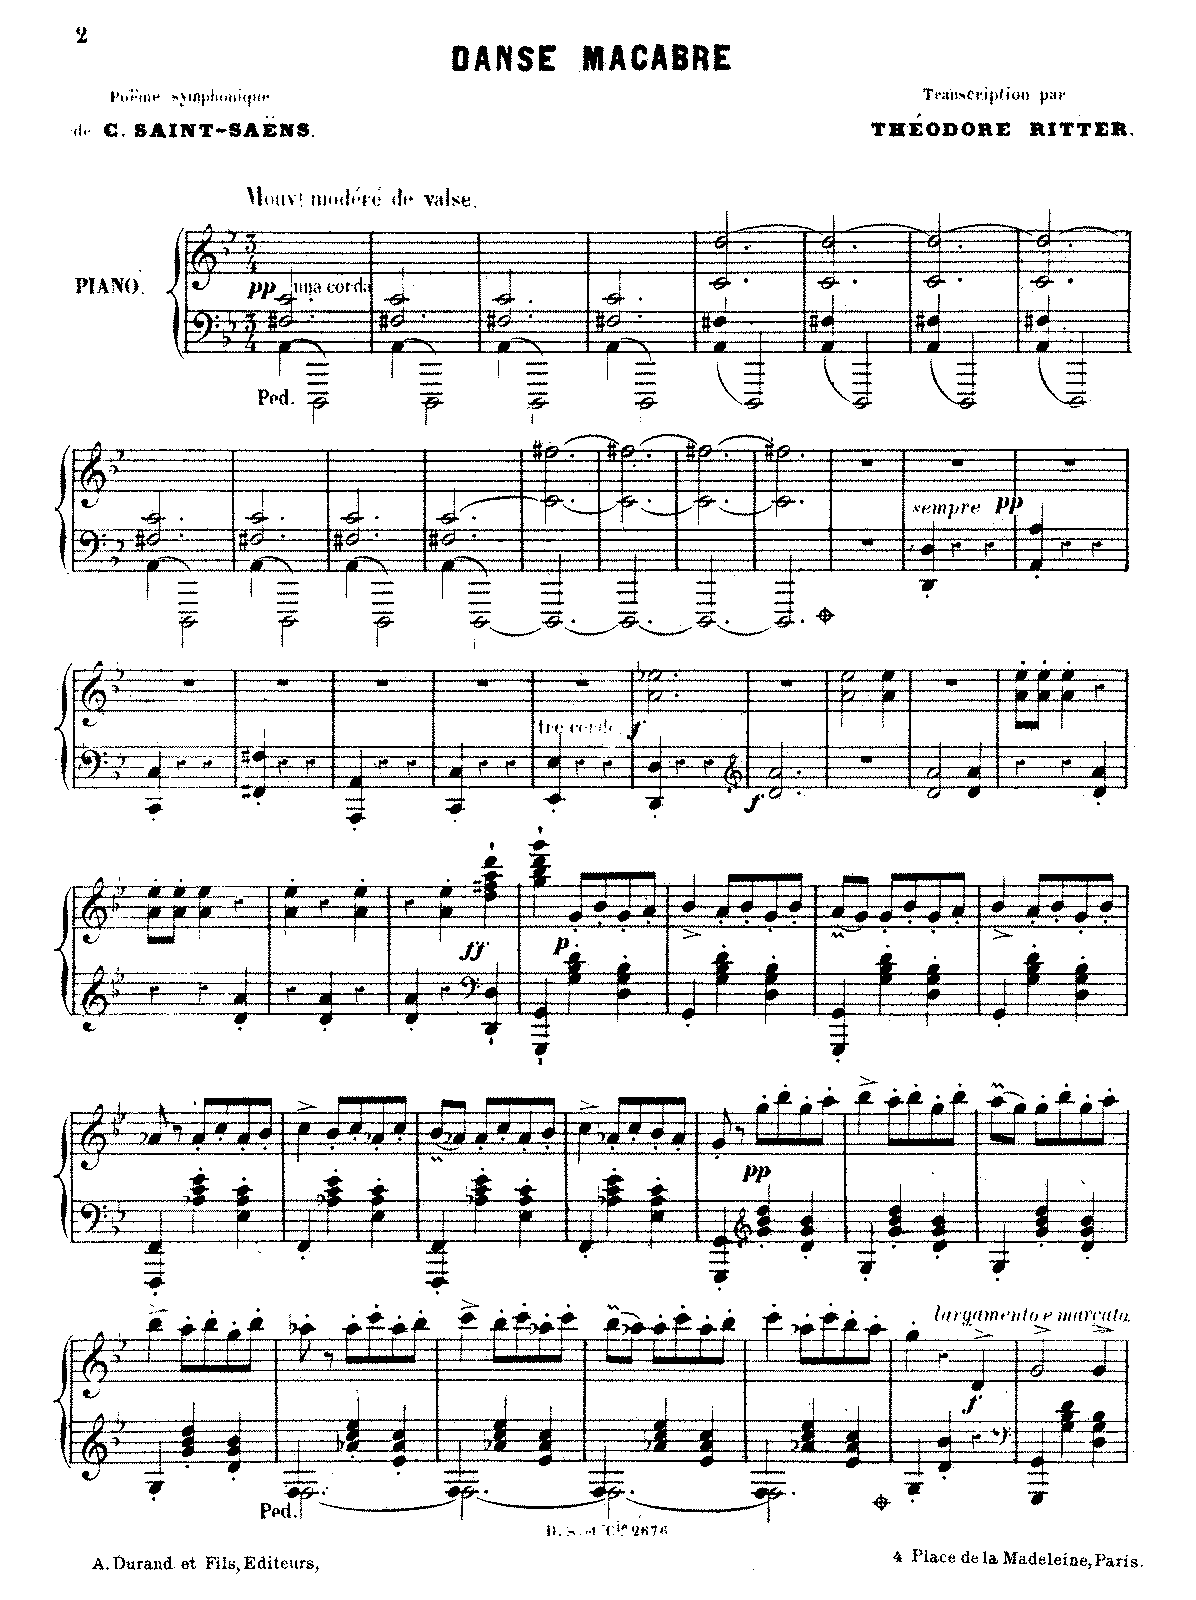 danse macabre sheet music pdf